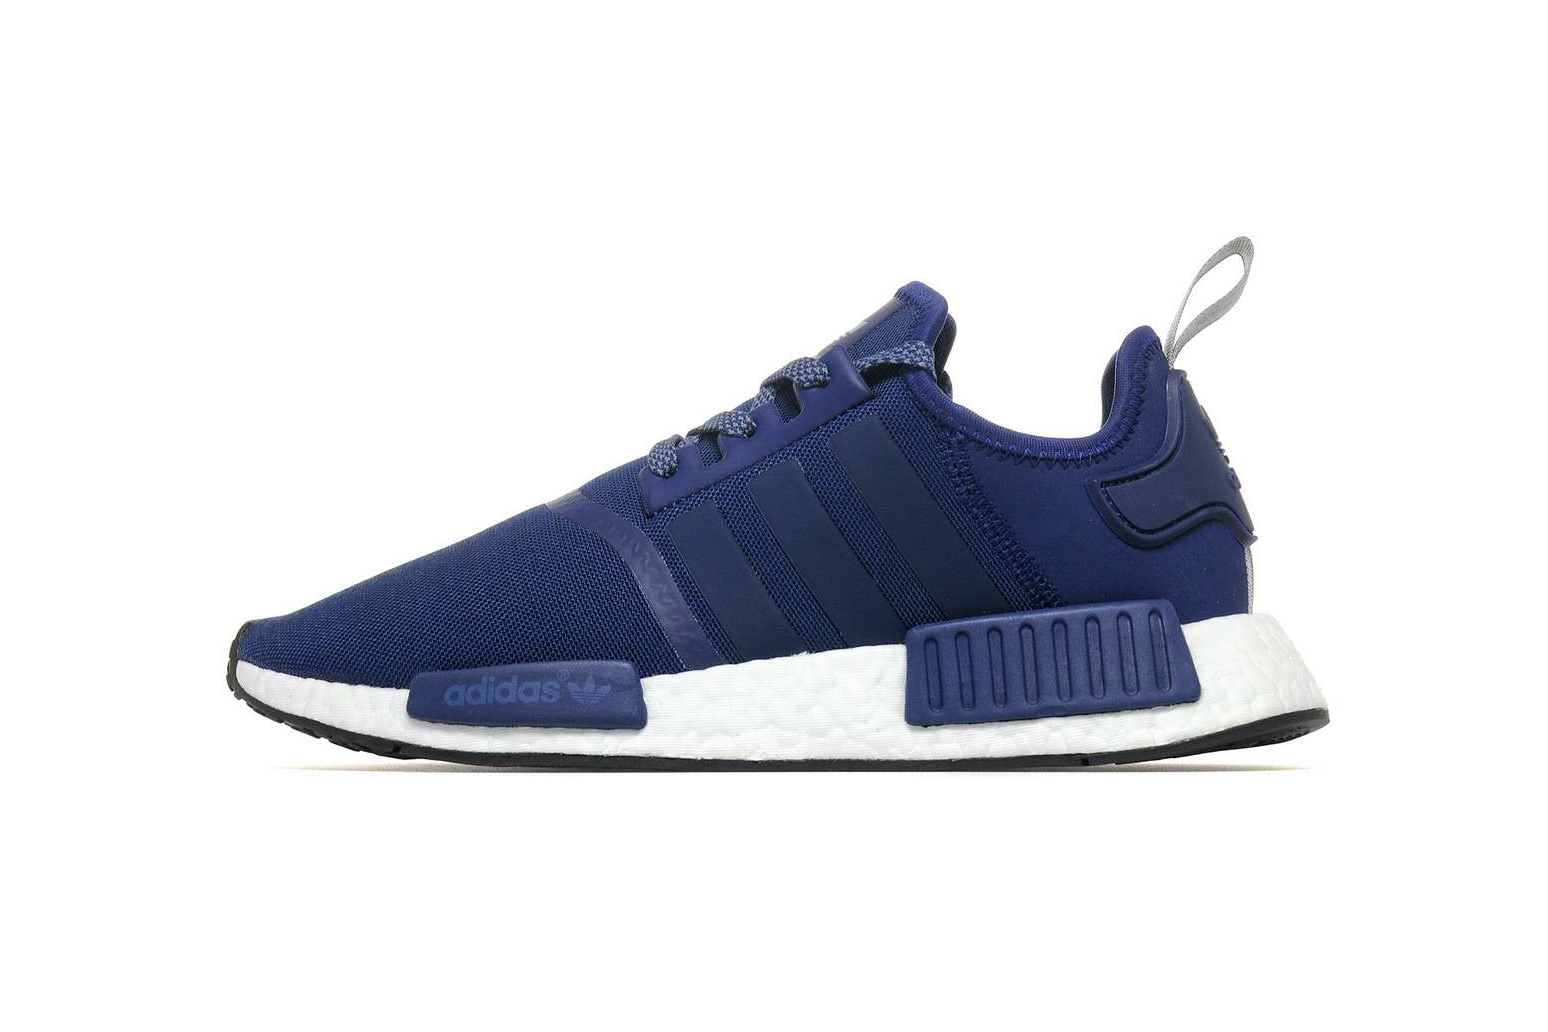 adidas Drops Another Blue Colorway of the NMD R1